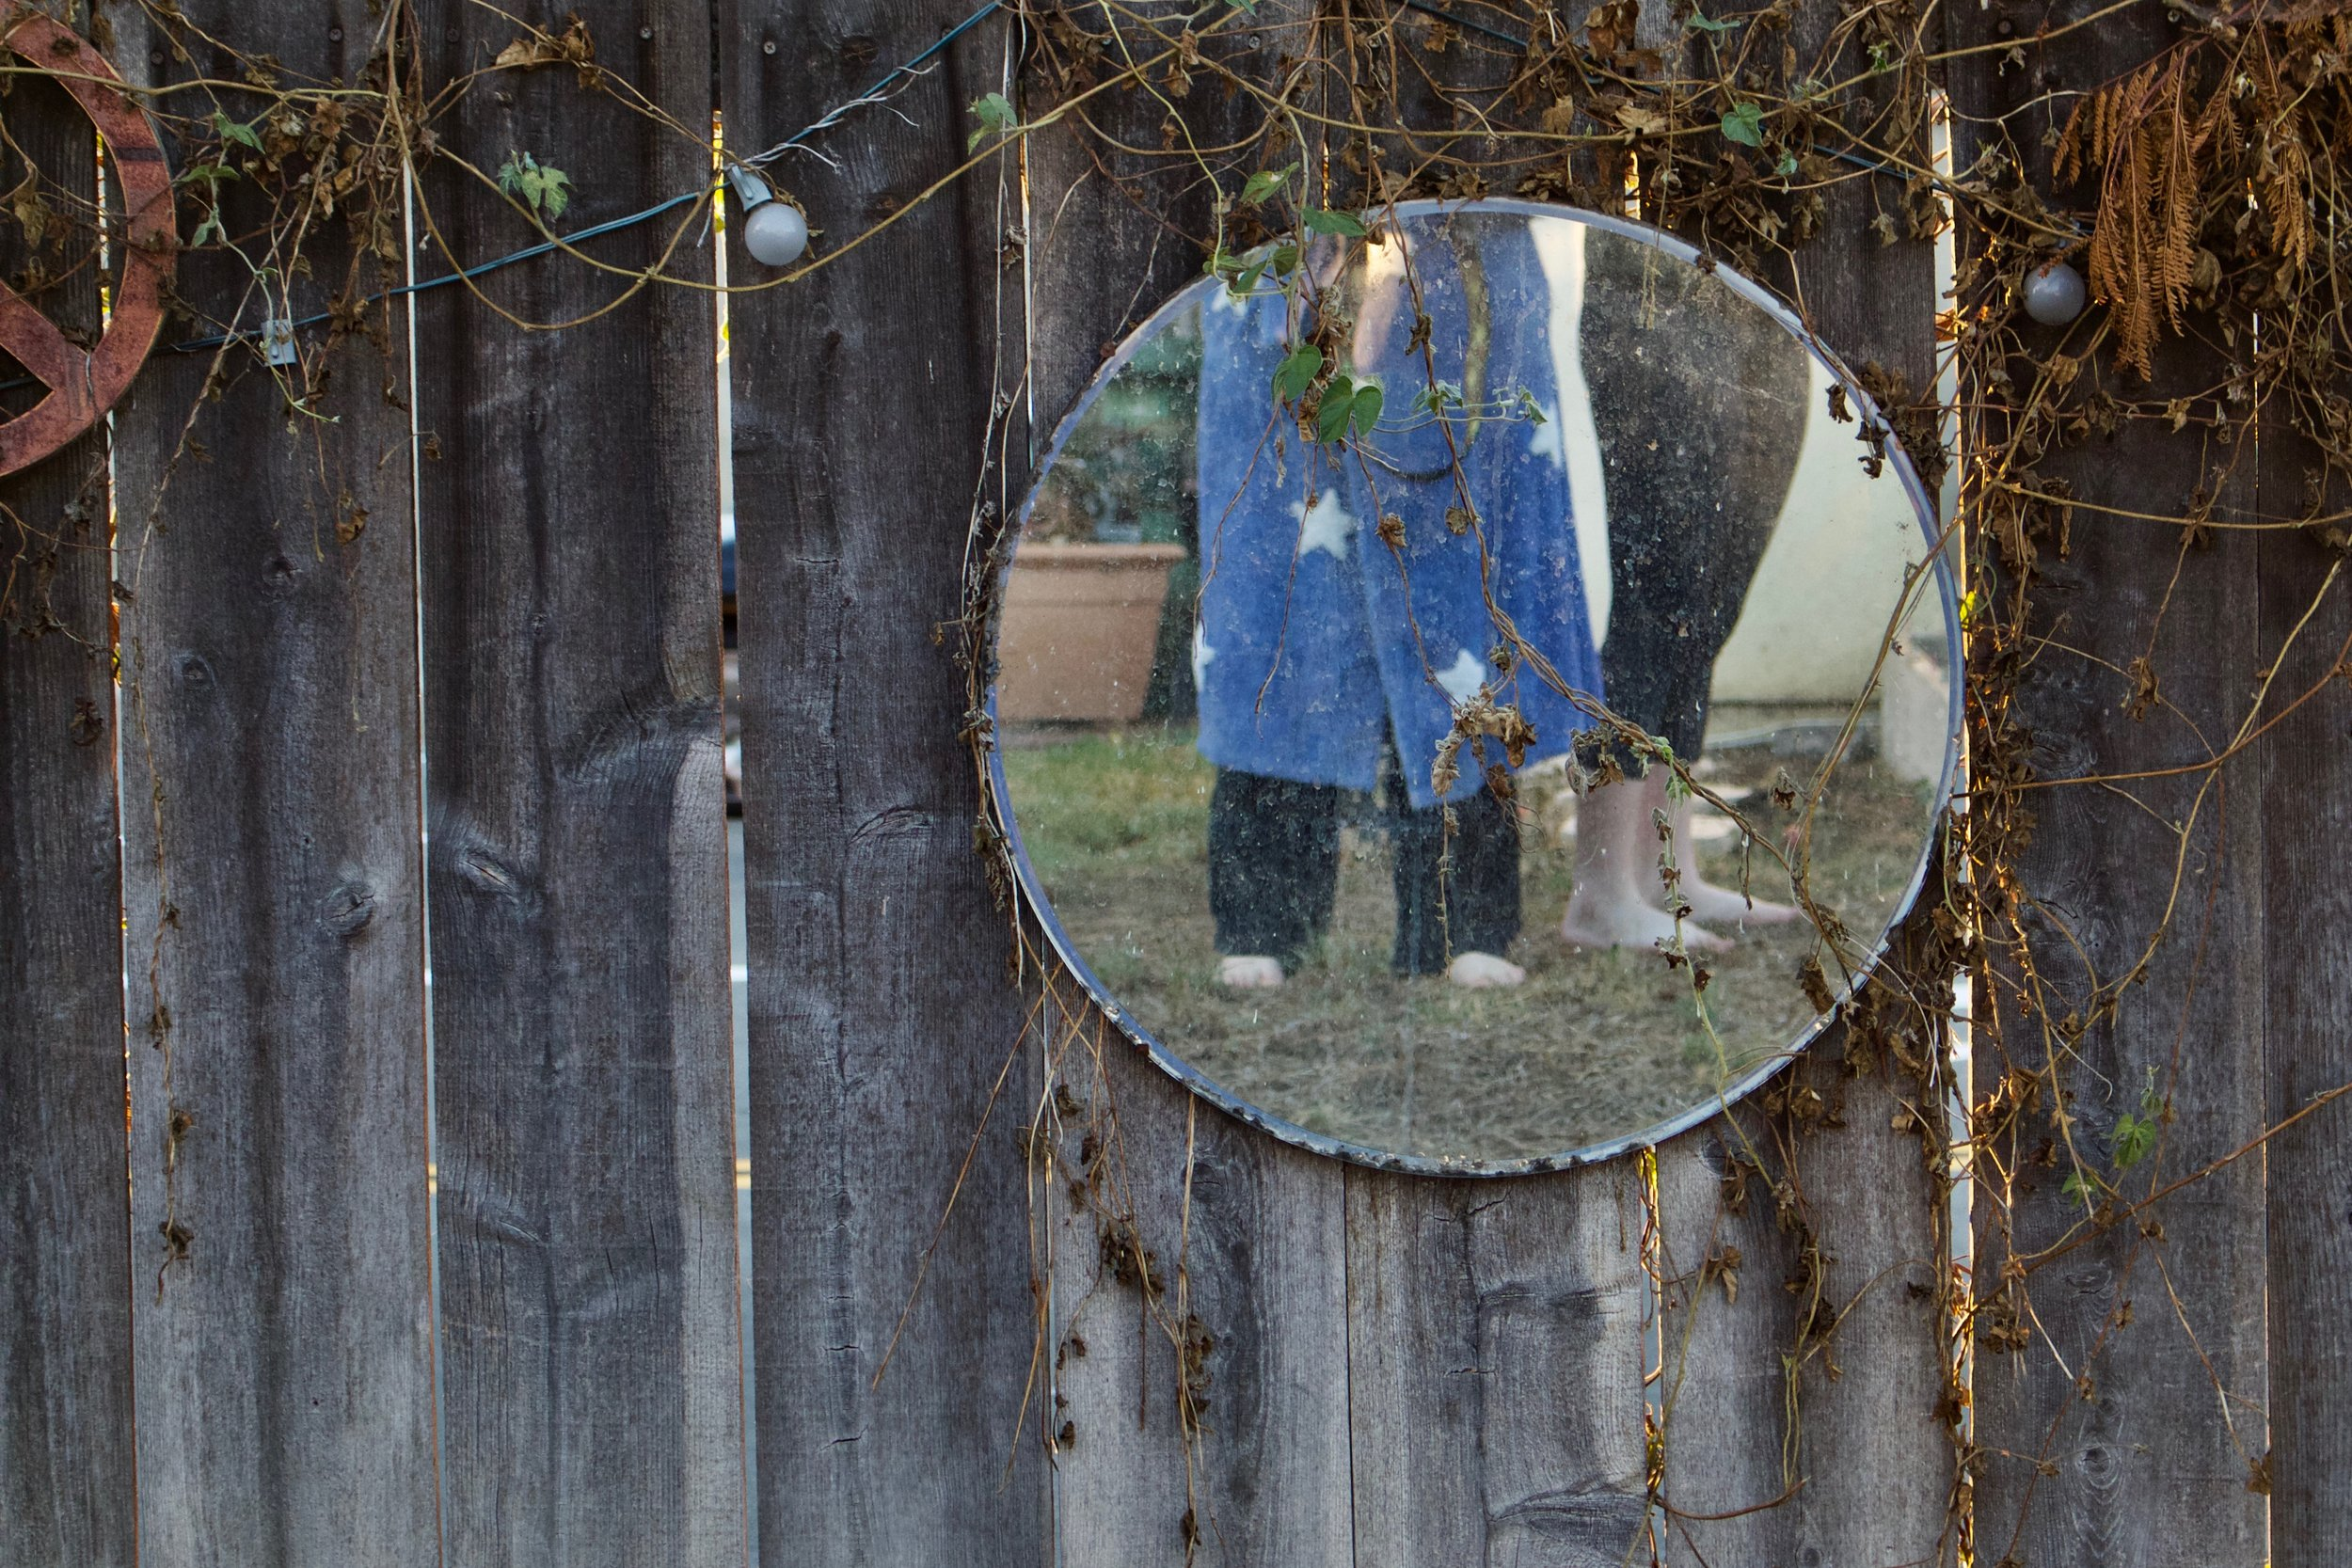 WE USED TO TAKE PICTURES IN THE MIRROR THAT ONCE HUNG ON THE FENCE THAT ONCE WAS THERE.